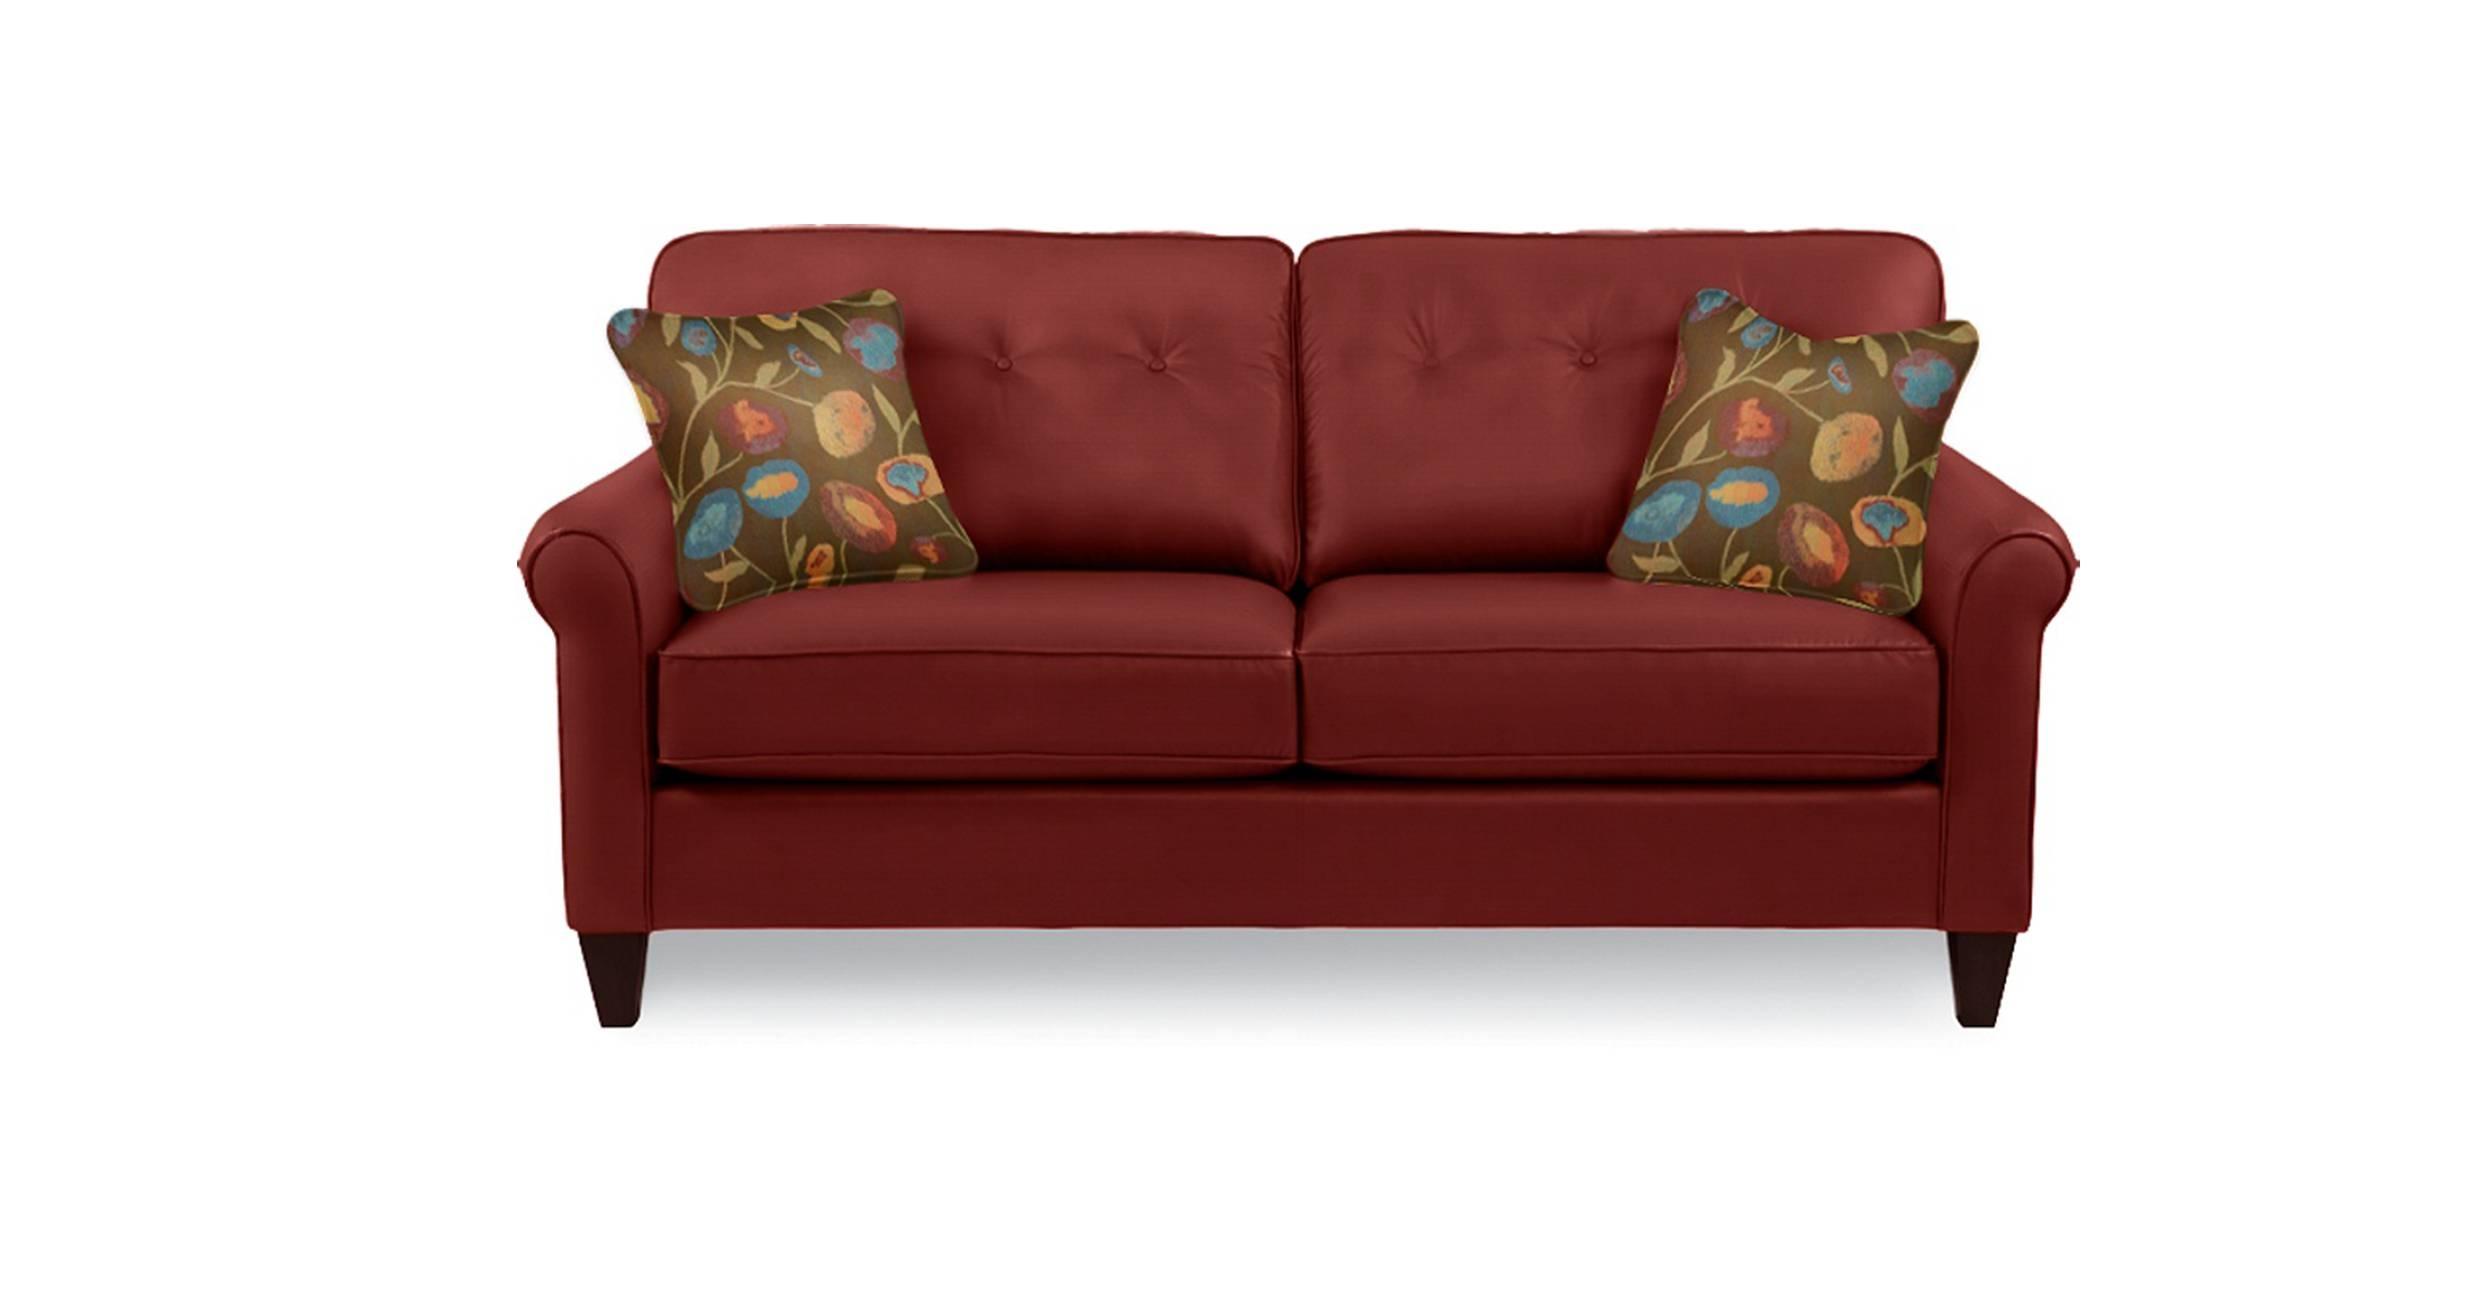 Lazy Boy Sofas And Loveseats - Cornett's Furniture And Bedding pertaining to Lazy Boy Sofas (Image 8 of 15)